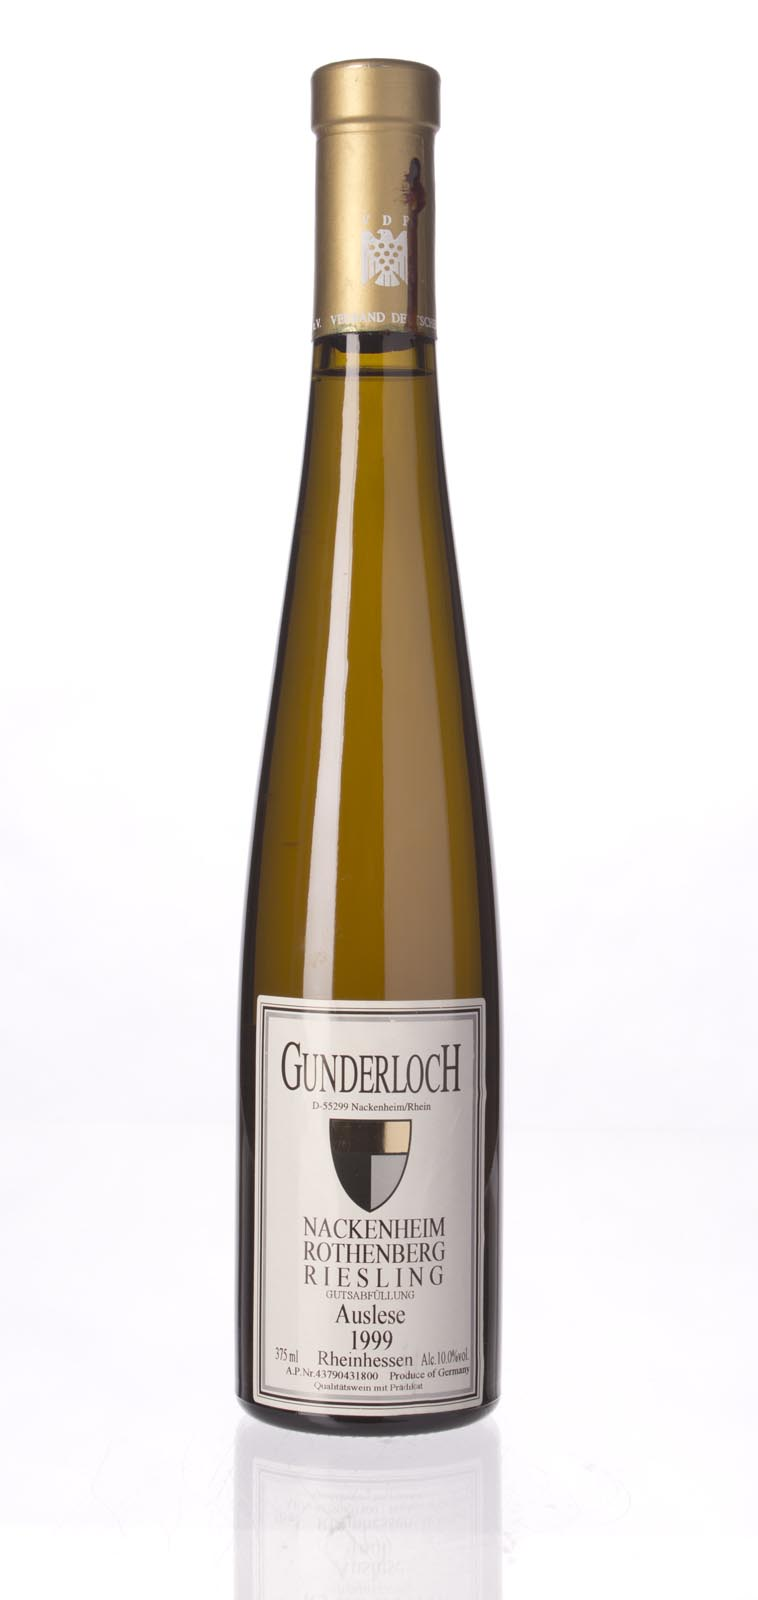 Gunderloch Nackenheimer Rothenberg Riesling Auslese Gold Capsule 1999, 375ml (WS95) from The BPW - Merchants of rare and fine wines.